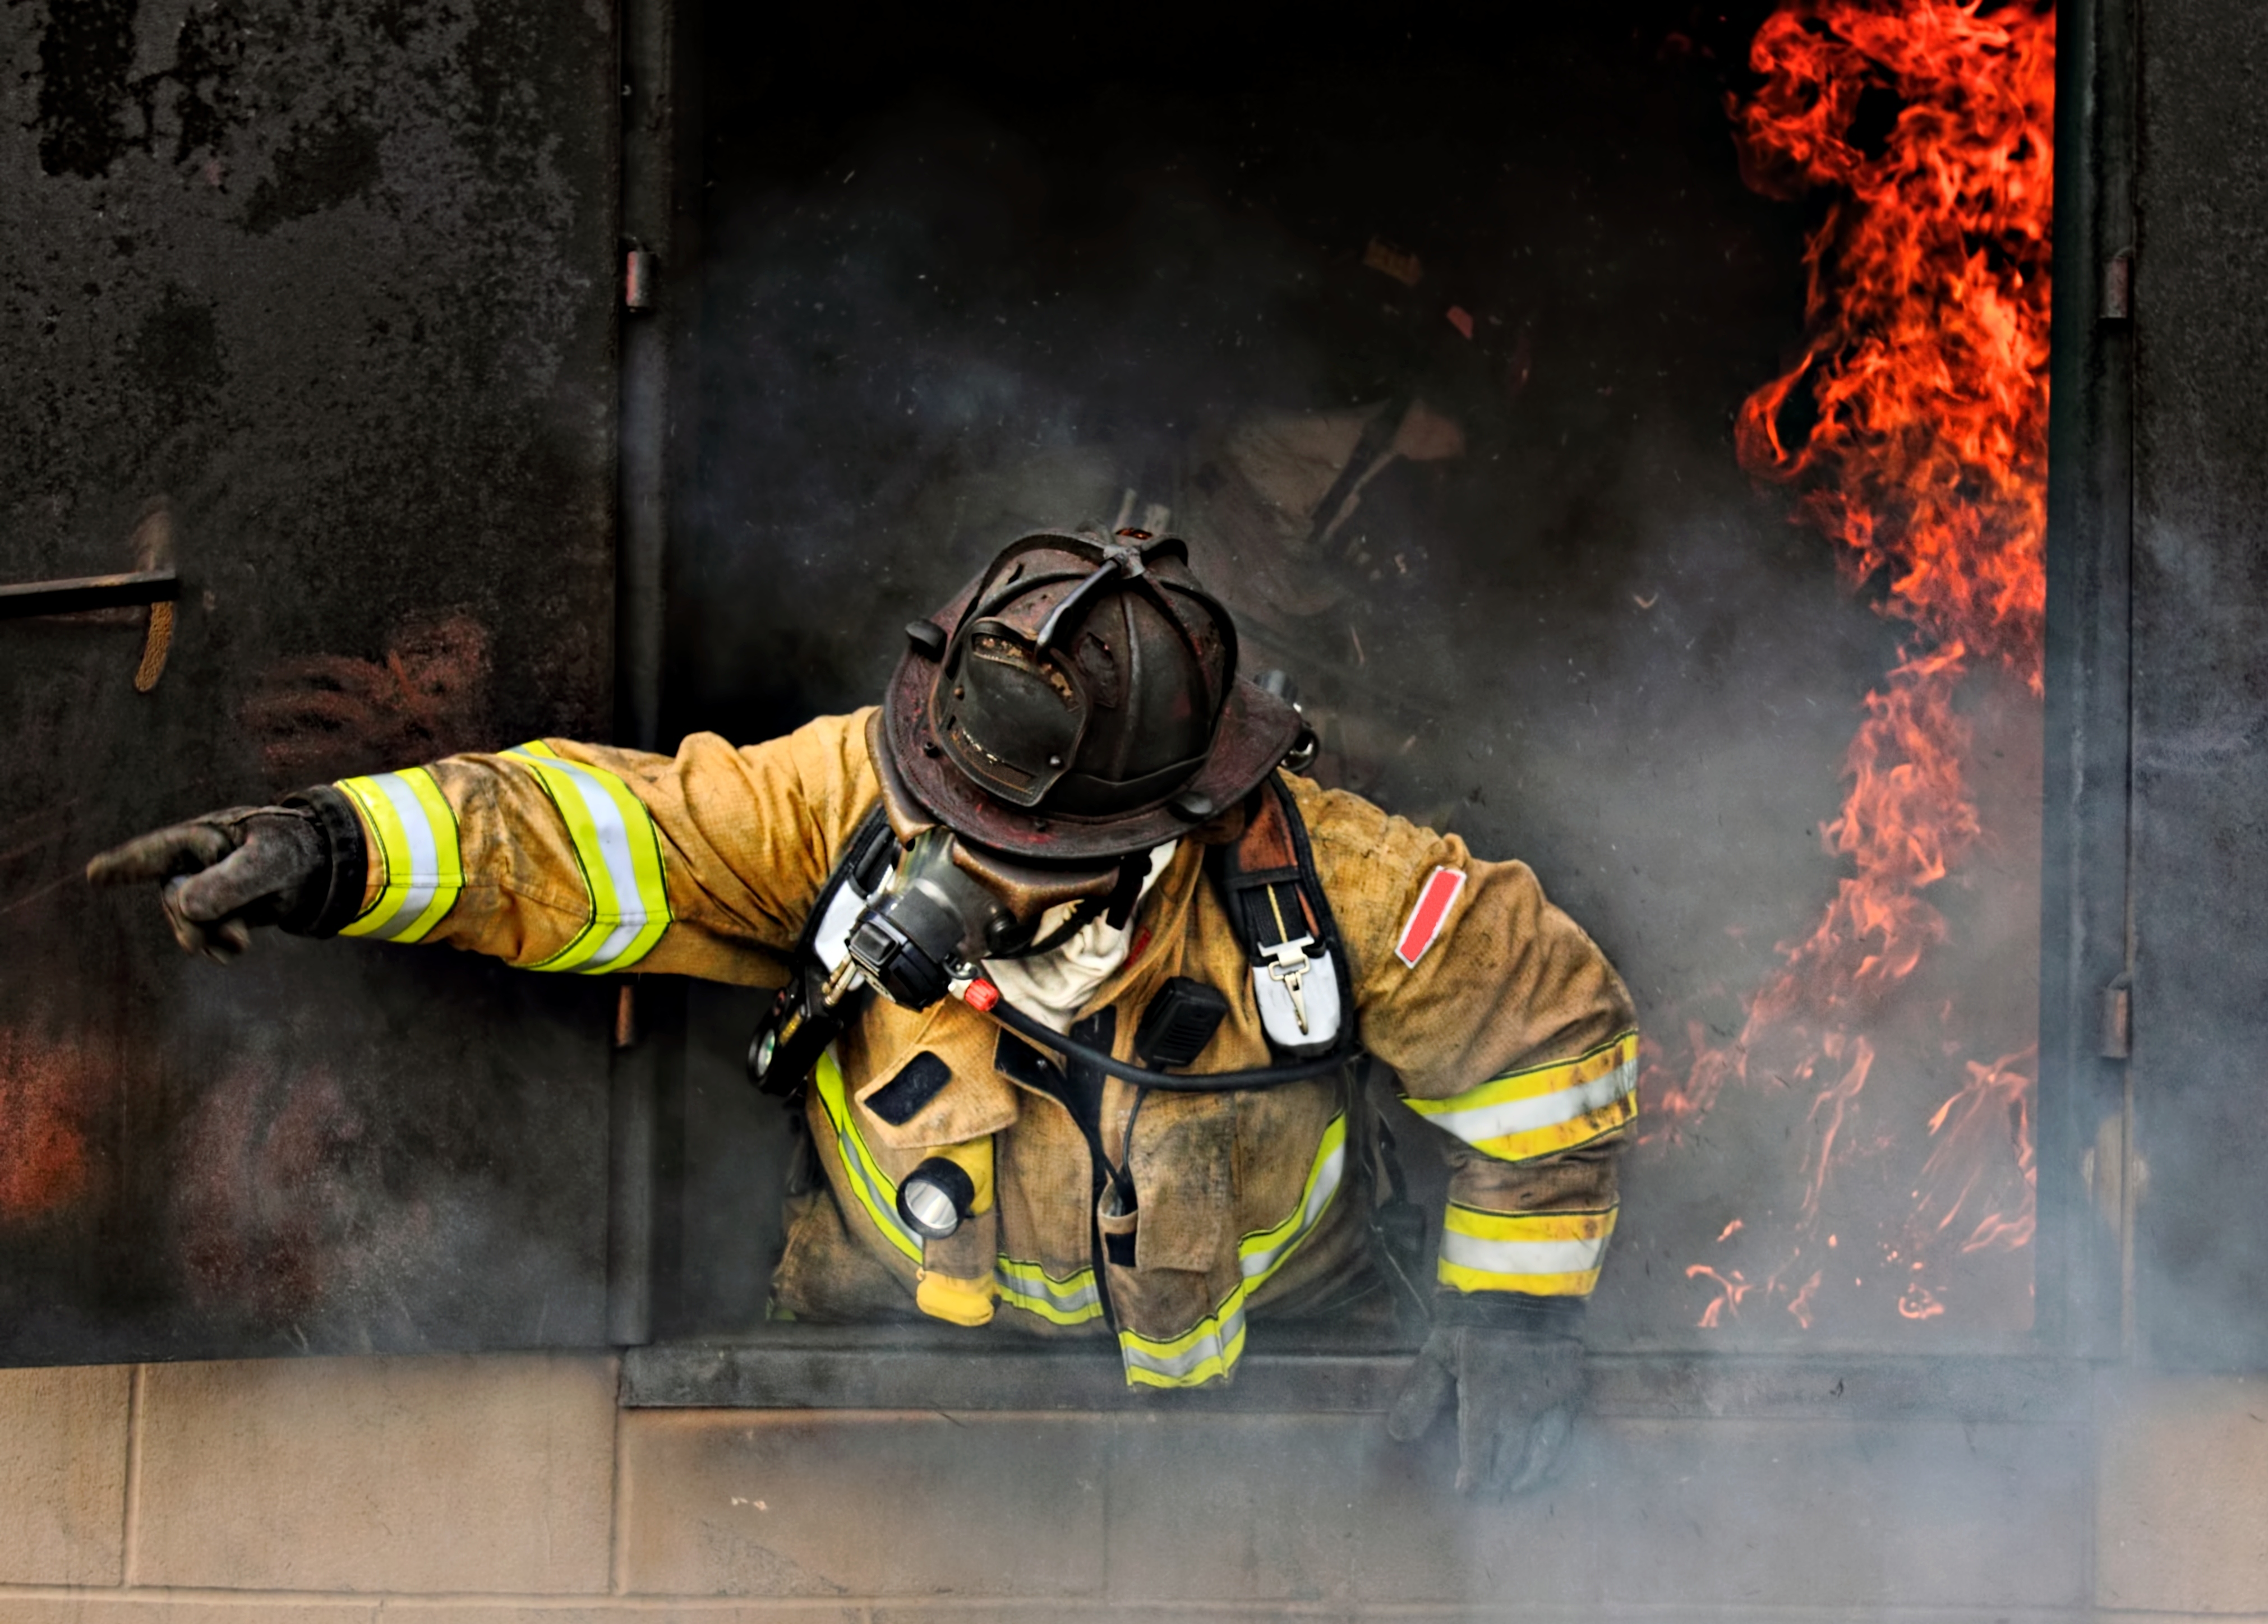 Firefighters Top Ranking of Most Stressful Jobs - AOL Finance